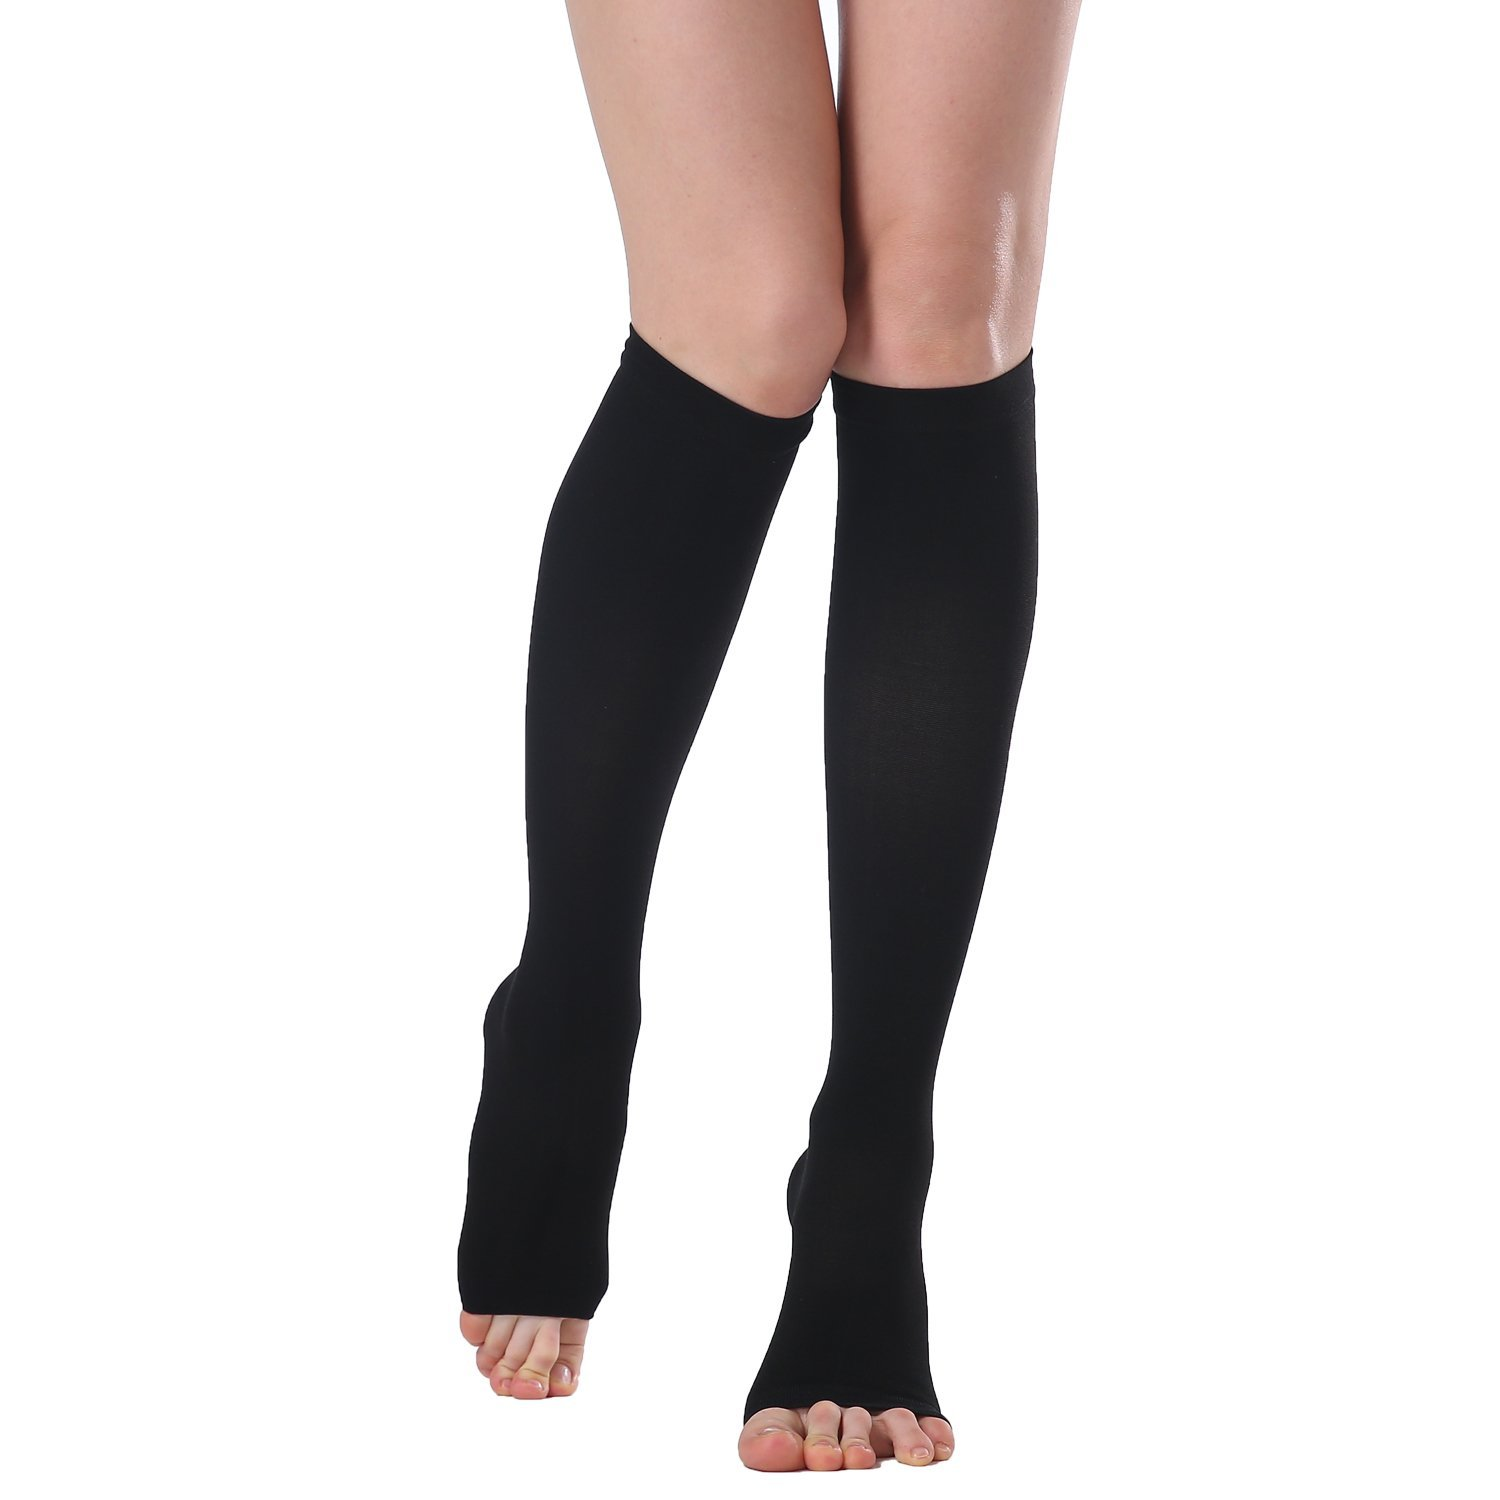 821123f78b ICE Medical Knee High Open Toe Compression Stockings Firm Support 20-30mmHg,